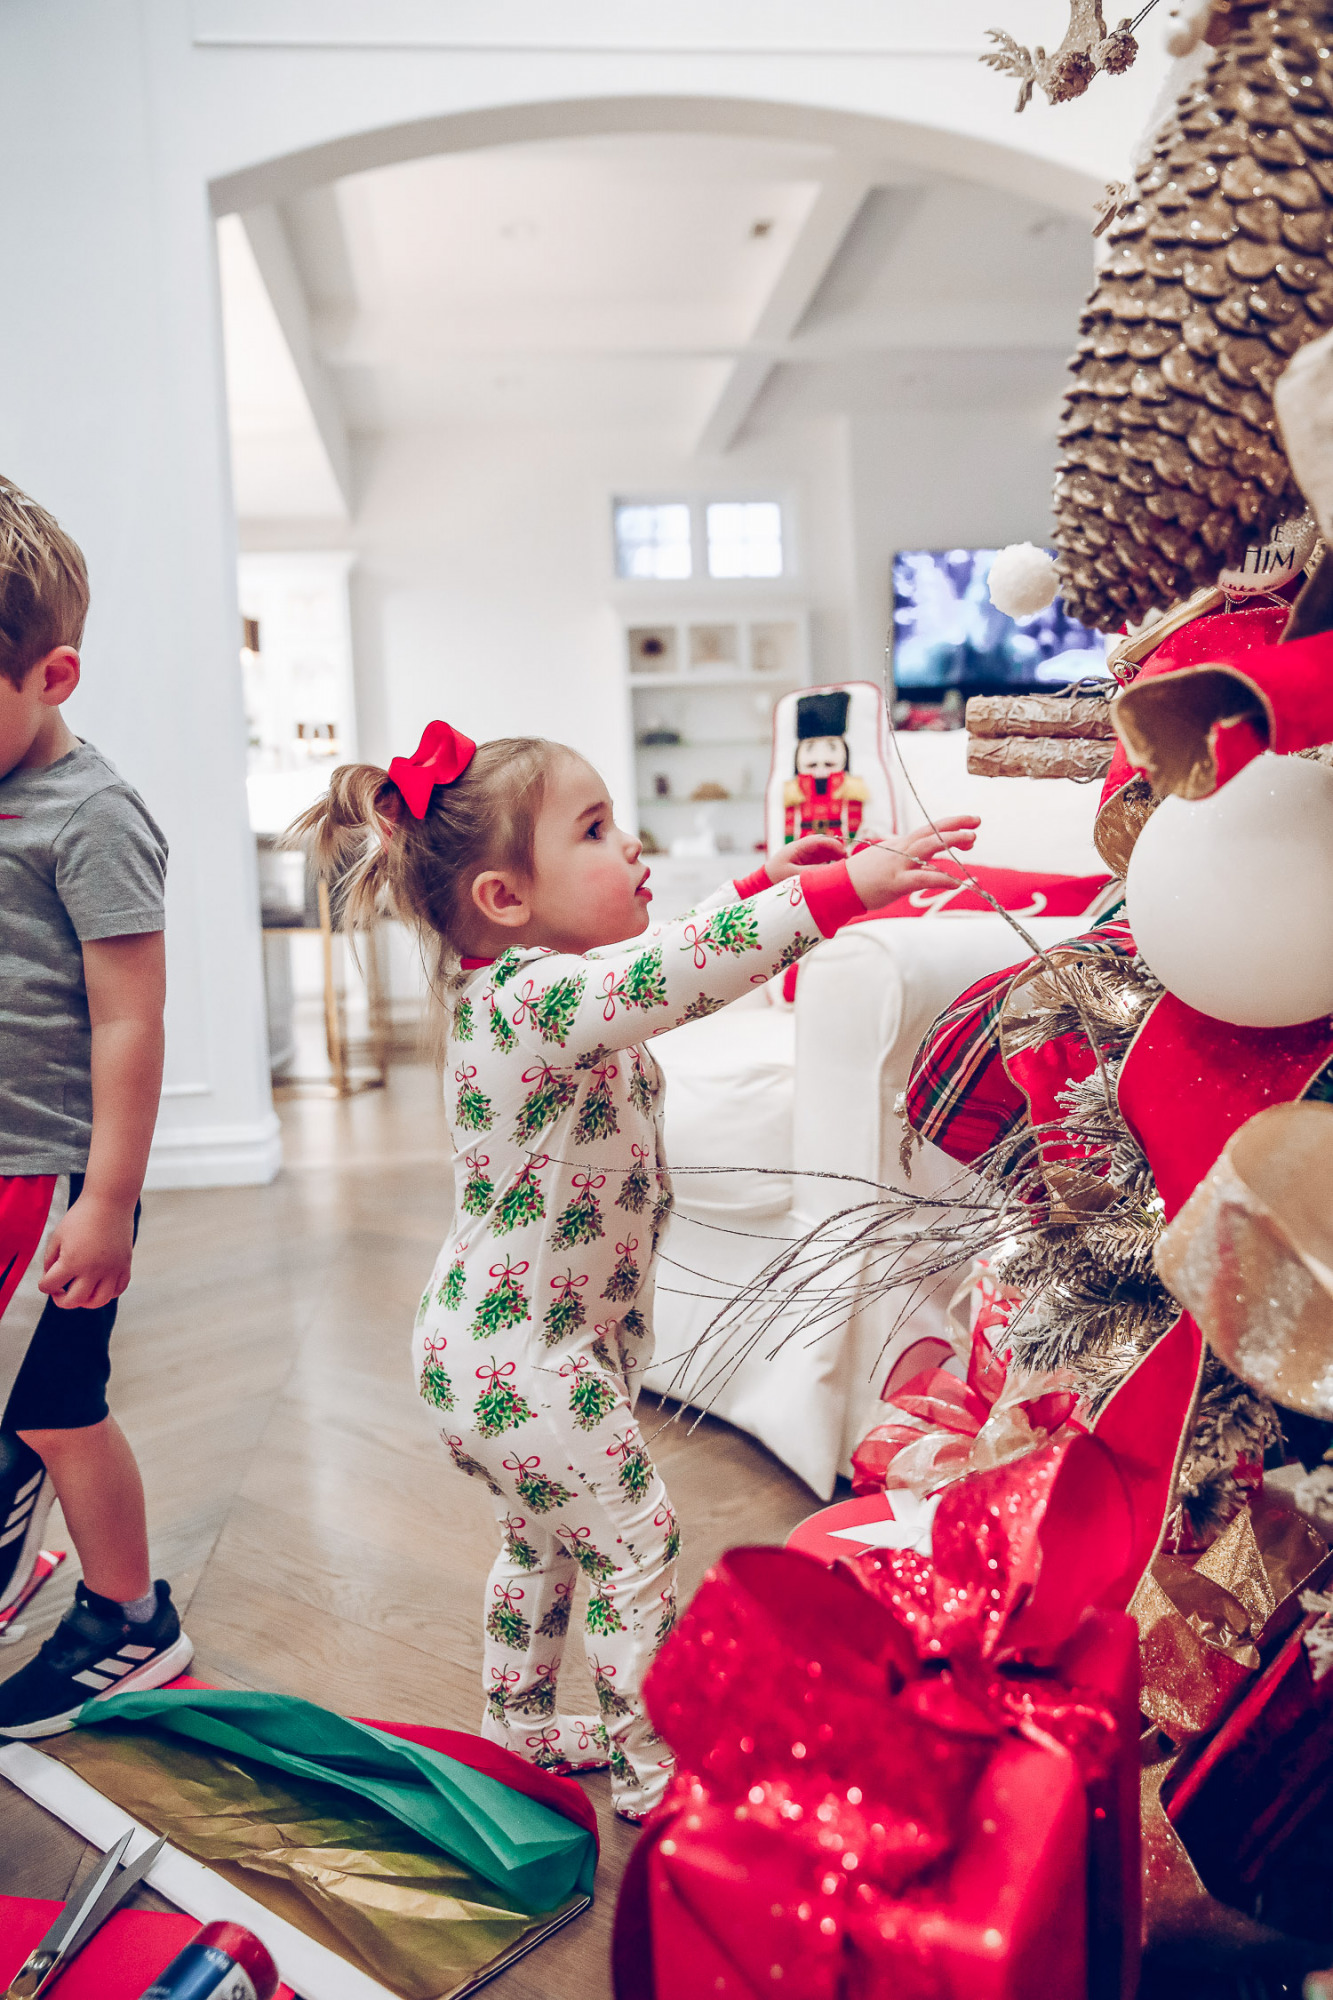 walmart gift wrap christmas 2020, shop hello holidays christmas tree, magnetic me PJs, emily ann gemma-10 |Gift Wrapping Ideas by popular US life and style blog, The Sweetest Thing: image of a little girl wearing Magnetic Me Christmas pjs while standing in front of her Christmas tree.